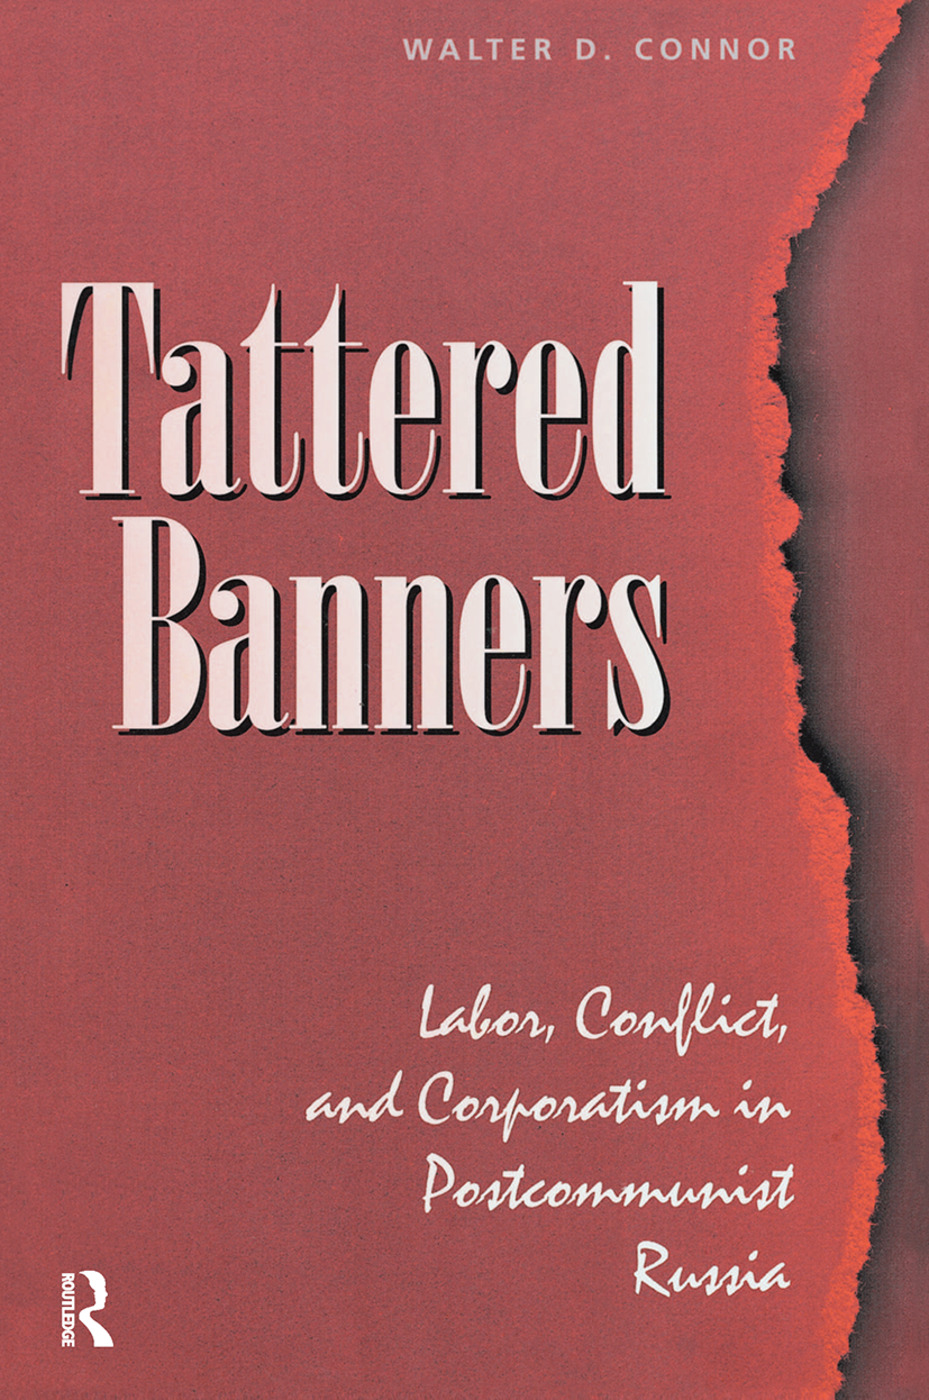 Tattered Banners: Labor, Conflict, And Corporatism In Postcommunist Russia, 1st Edition (Hardback) book cover